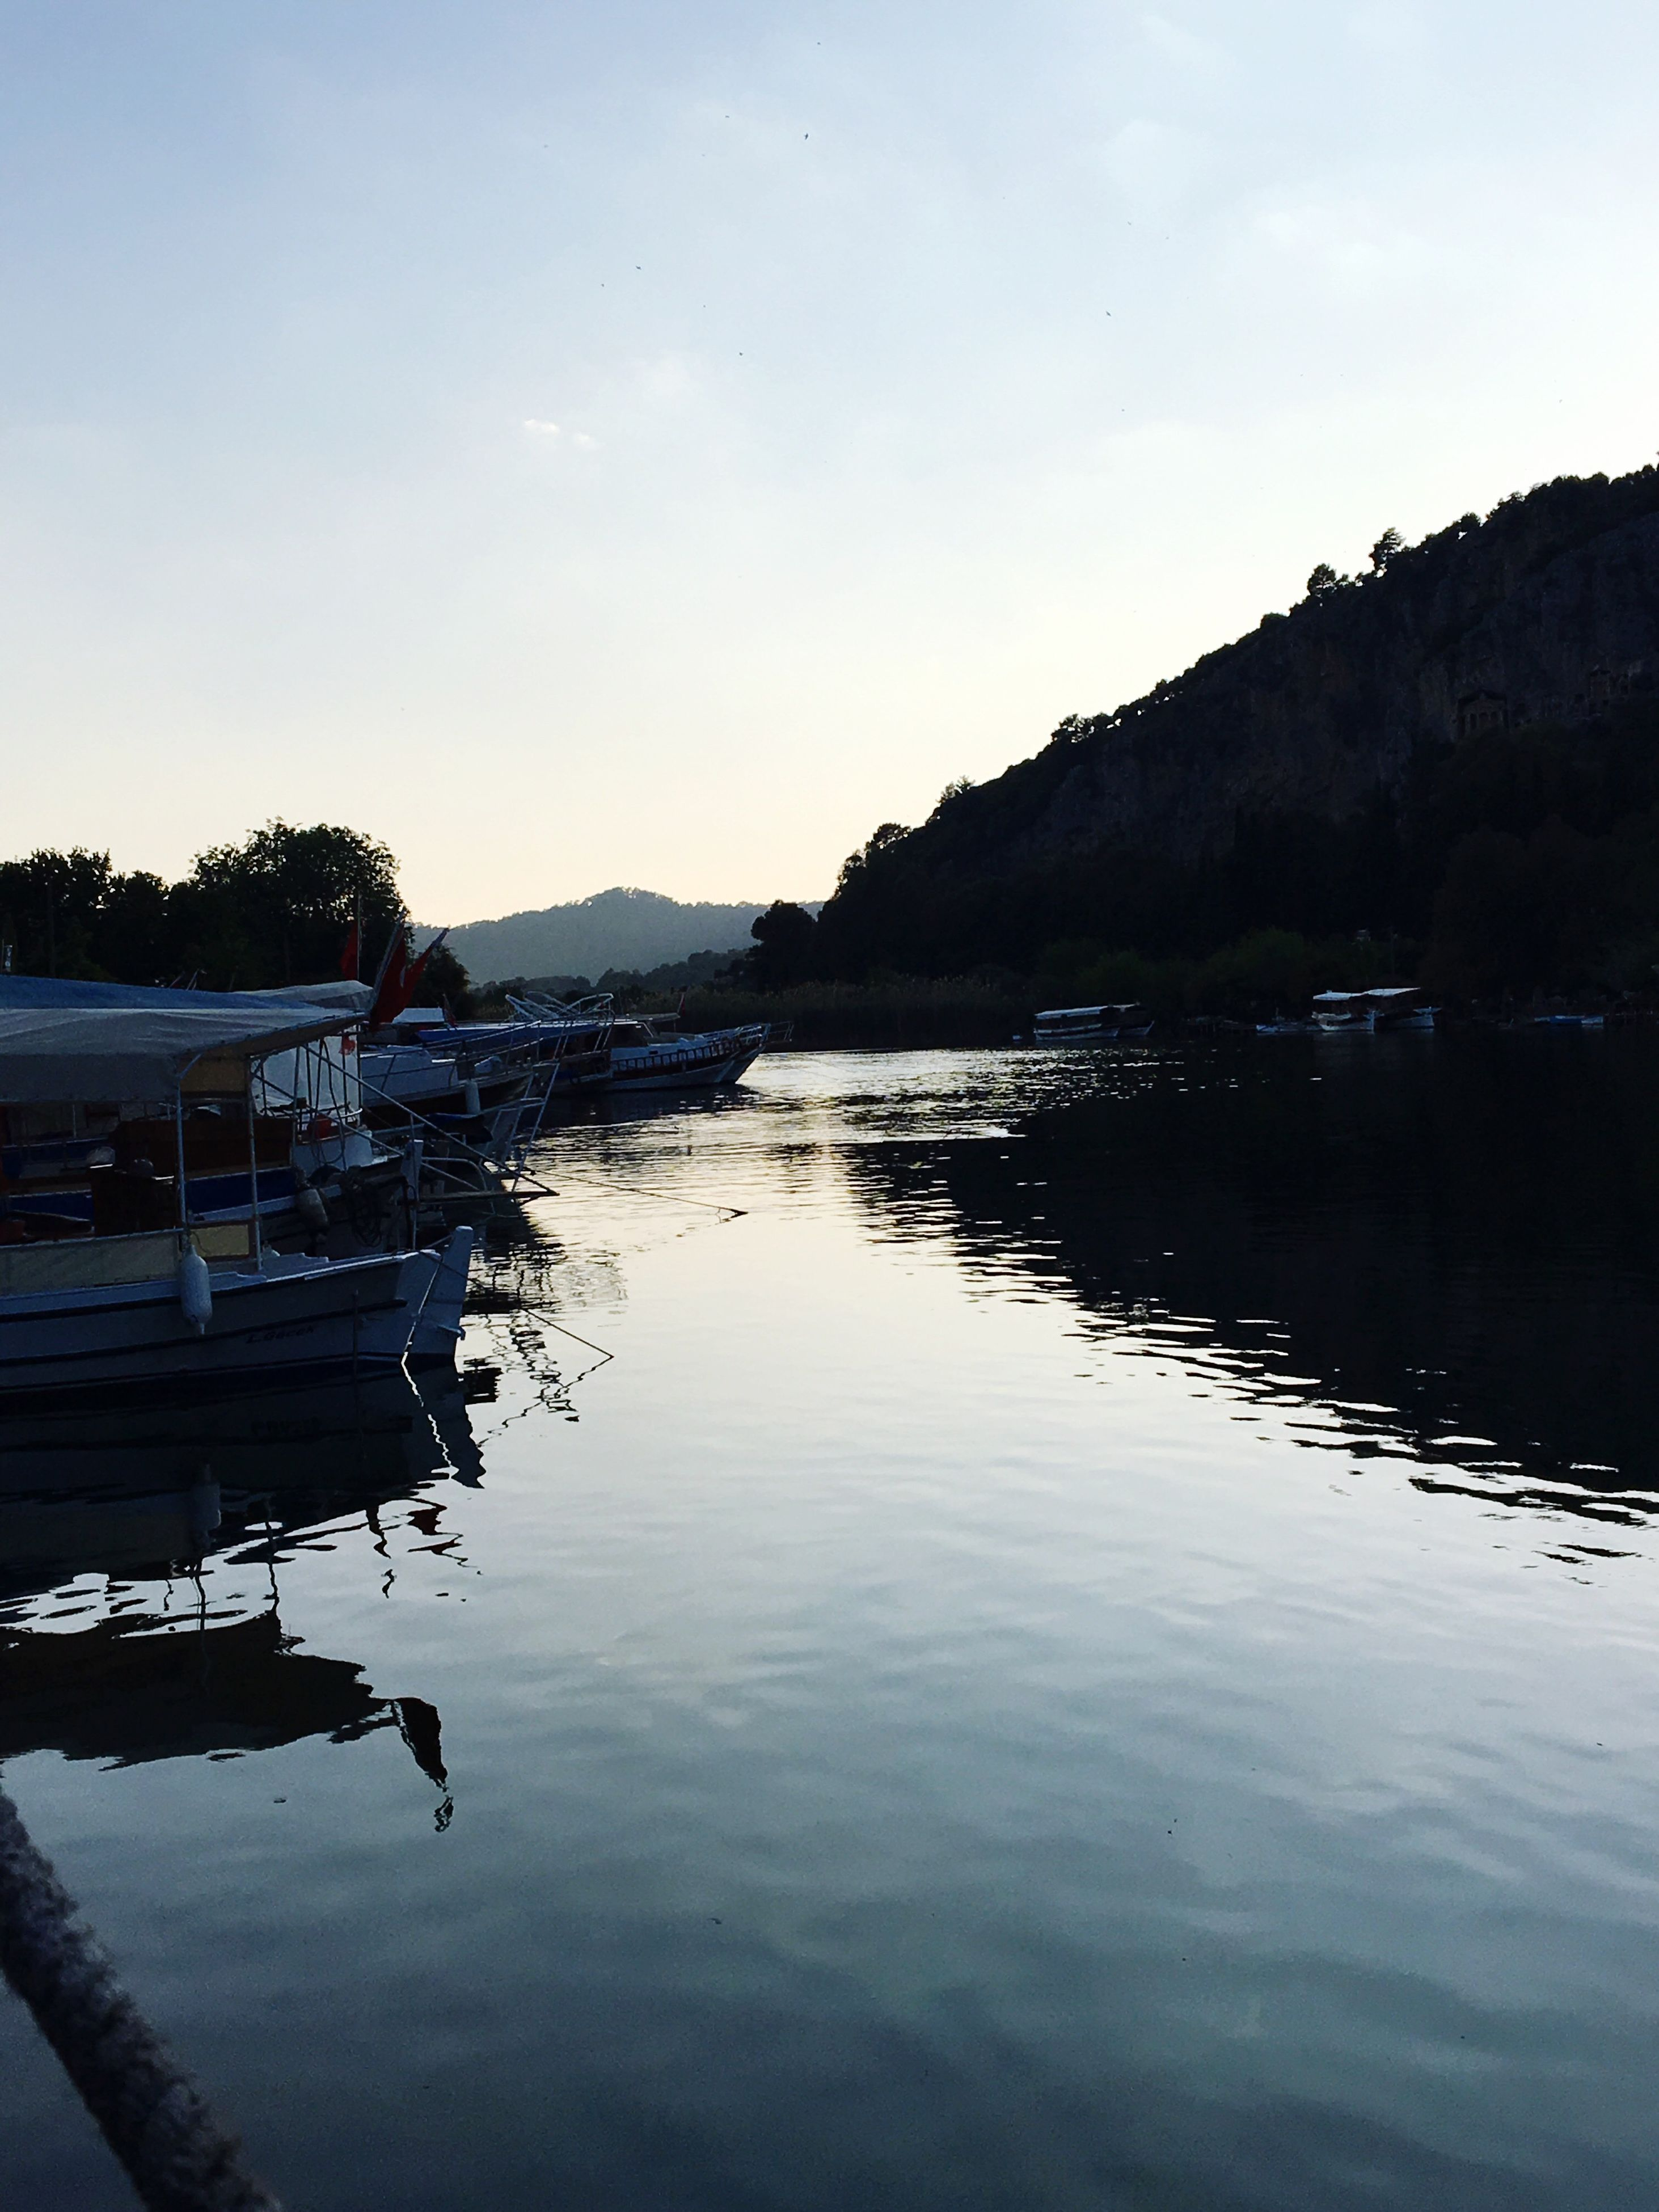 reflection, water, sky, nature, tree, beauty in nature, outdoors, lake, nautical vessel, tranquility, scenics, no people, mountain, day